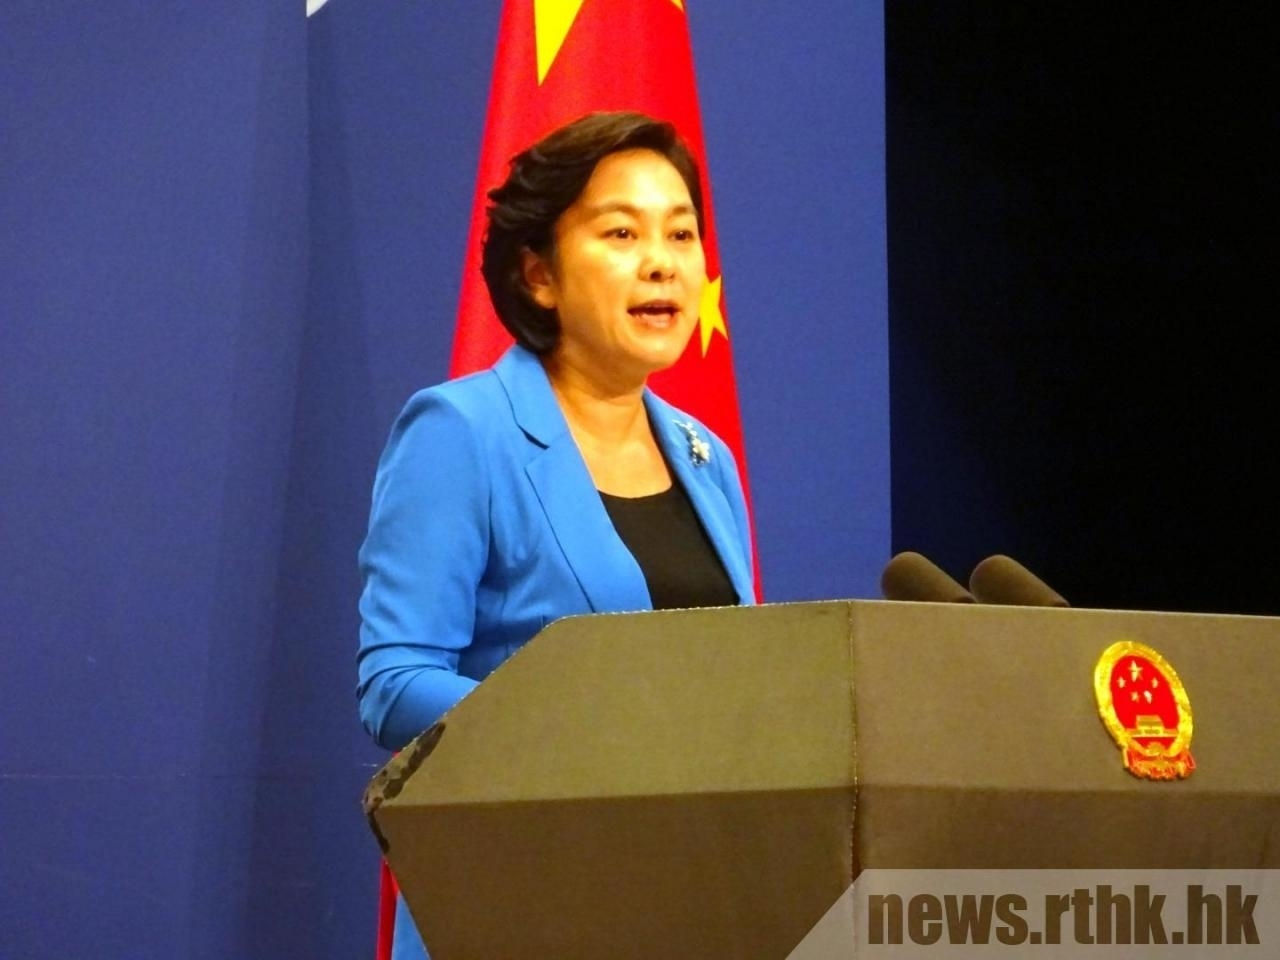 Foreign Ministry spokeswoman Hua Chunying says China's telecommunications and other high-tech industries are now falling victim to US 'economic coercion'. Photo: RTHK